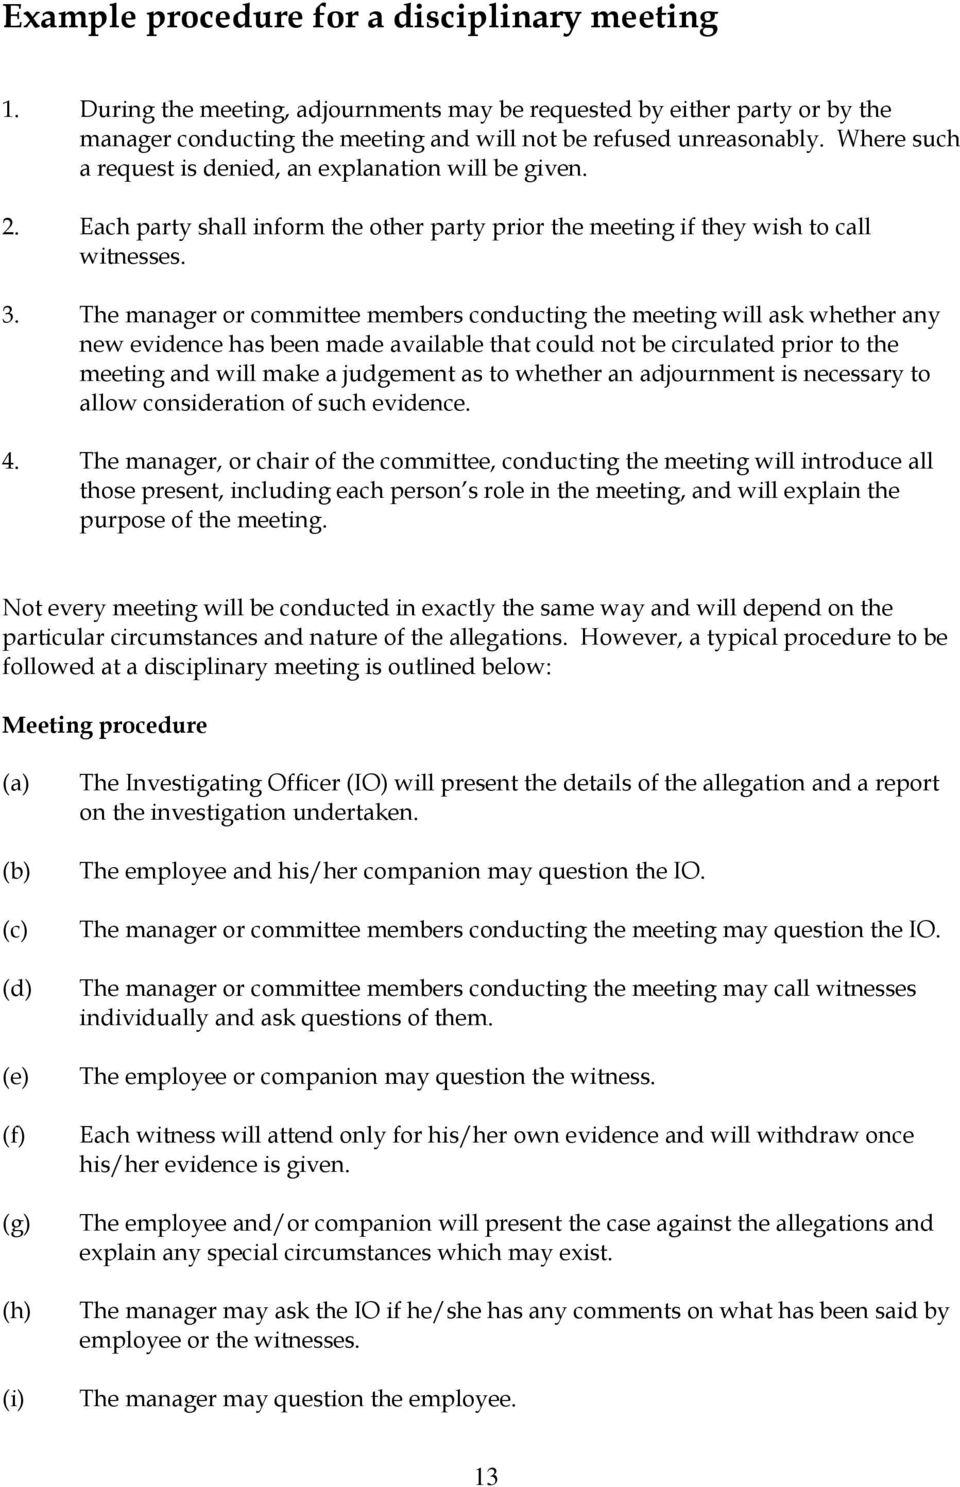 The manager or committee members conducting the meeting will ask whether any new evidence has been made available that could not be circulated prior to the meeting and will make a judgement as to